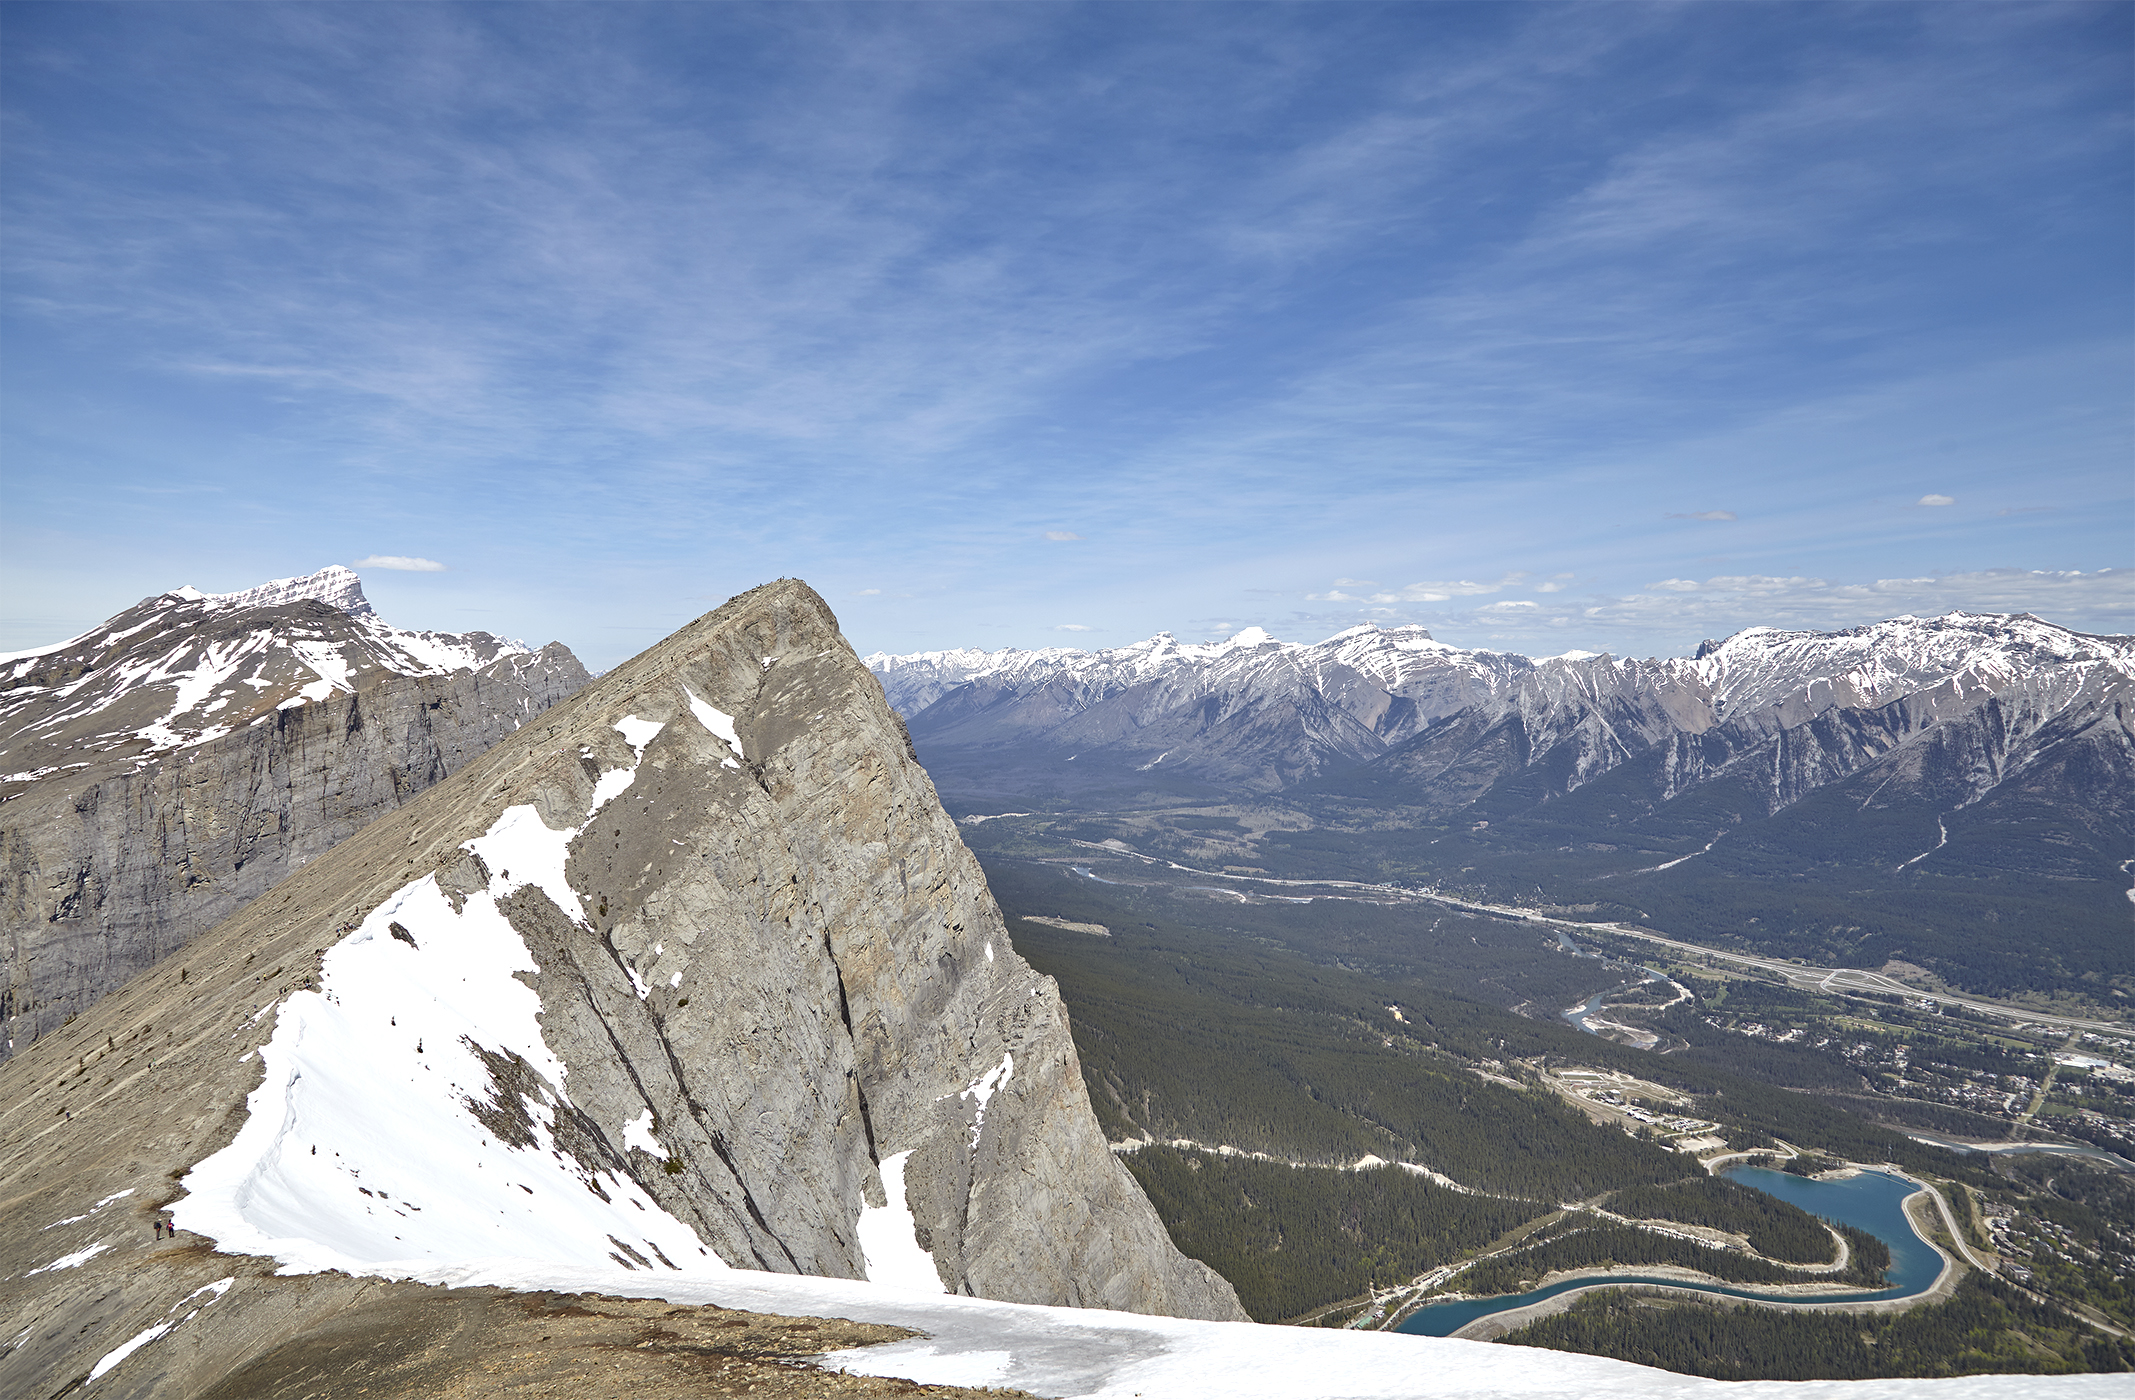 Ha Ling Peak and the Bow Valley from near the summit of Miner's Peak